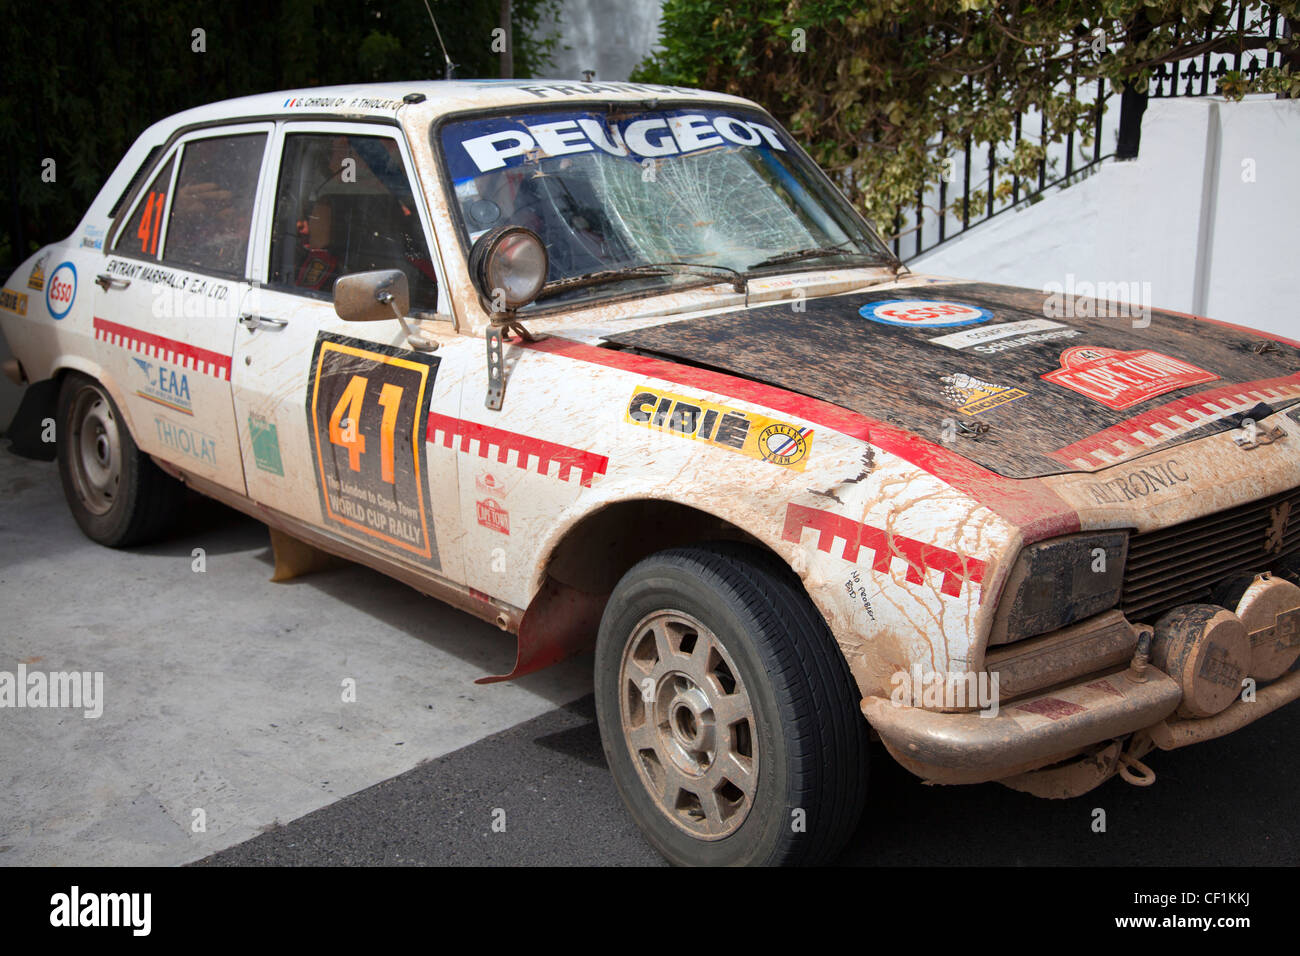 London to Cape Town Rally Car - Guy Chriqui and Philippe Thiolat finished 15th overall - Stock Image